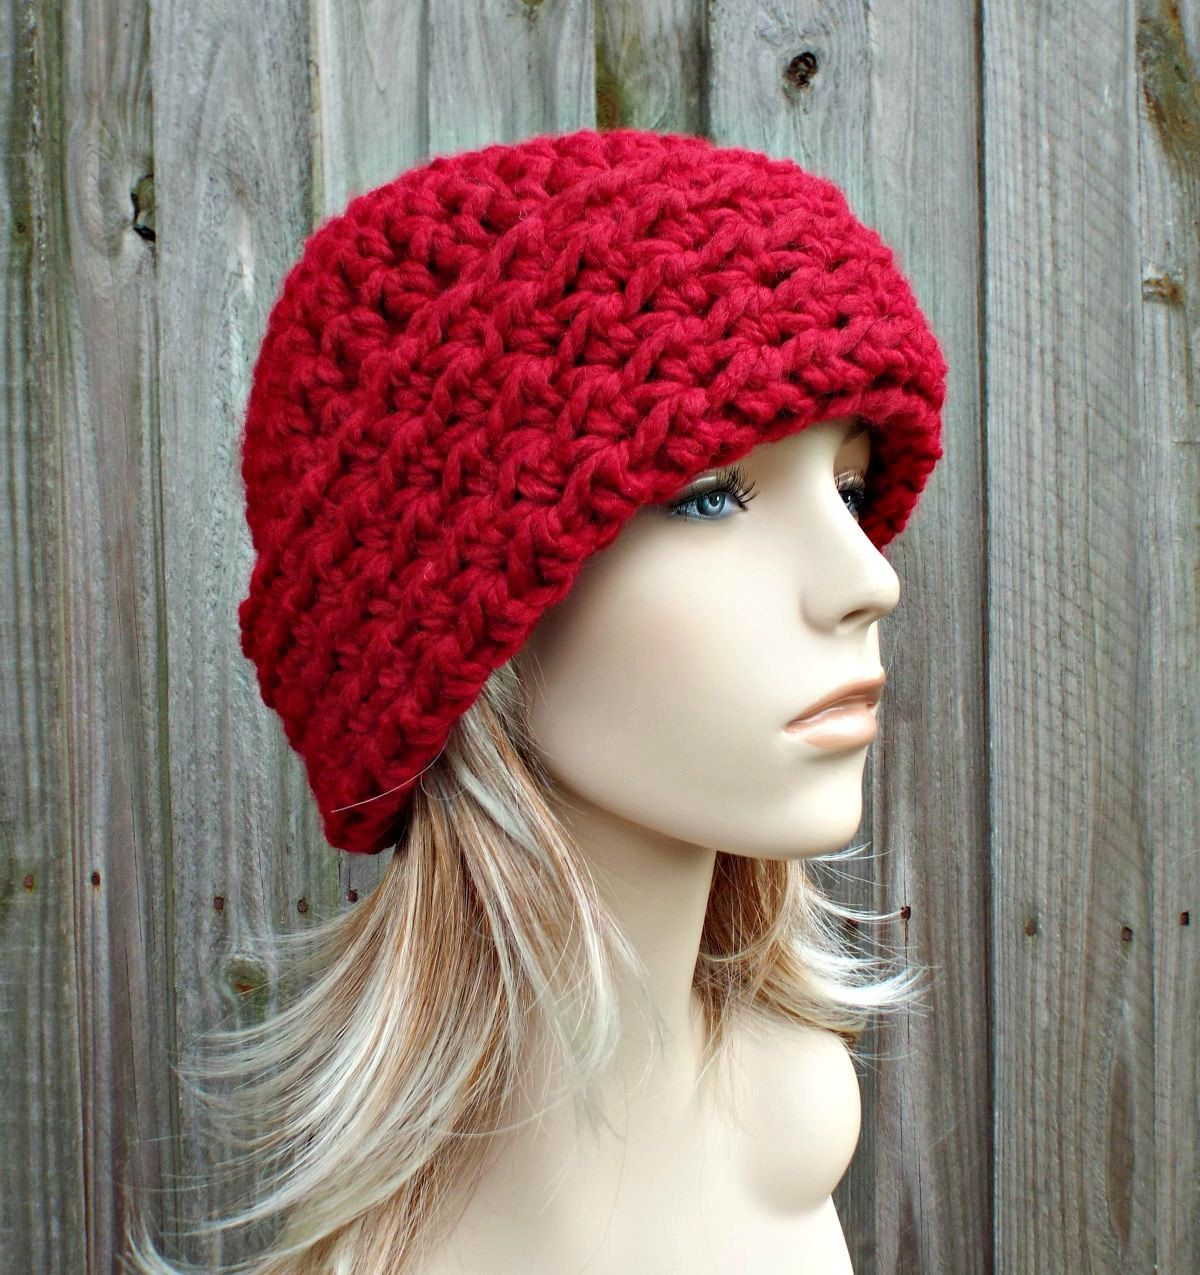 4daced5c27c Cranberry Red Womens Hat Red Mens Hat - Wide Cuff Beanie Hat Crochet Hat - Red  Hat Red Beanie Womens Accessories Winter Hat - READY TO SHIP by pixiebell  on ...